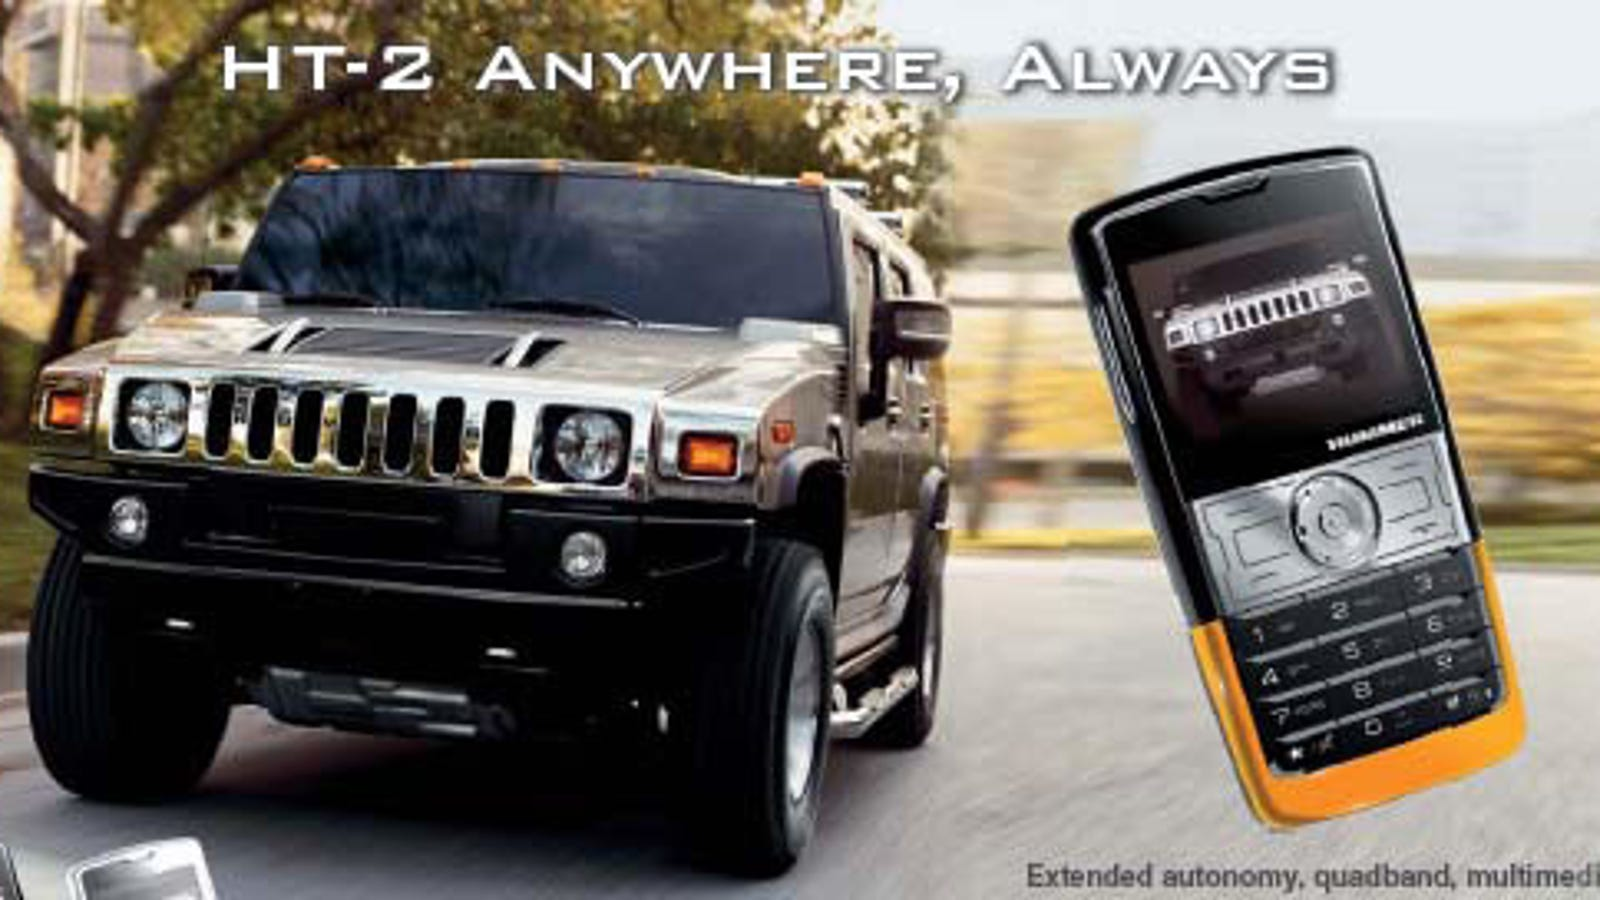 Hummer-Branded Mobile Phone Is Very Capable, Surprisingly | hummer mobile phones